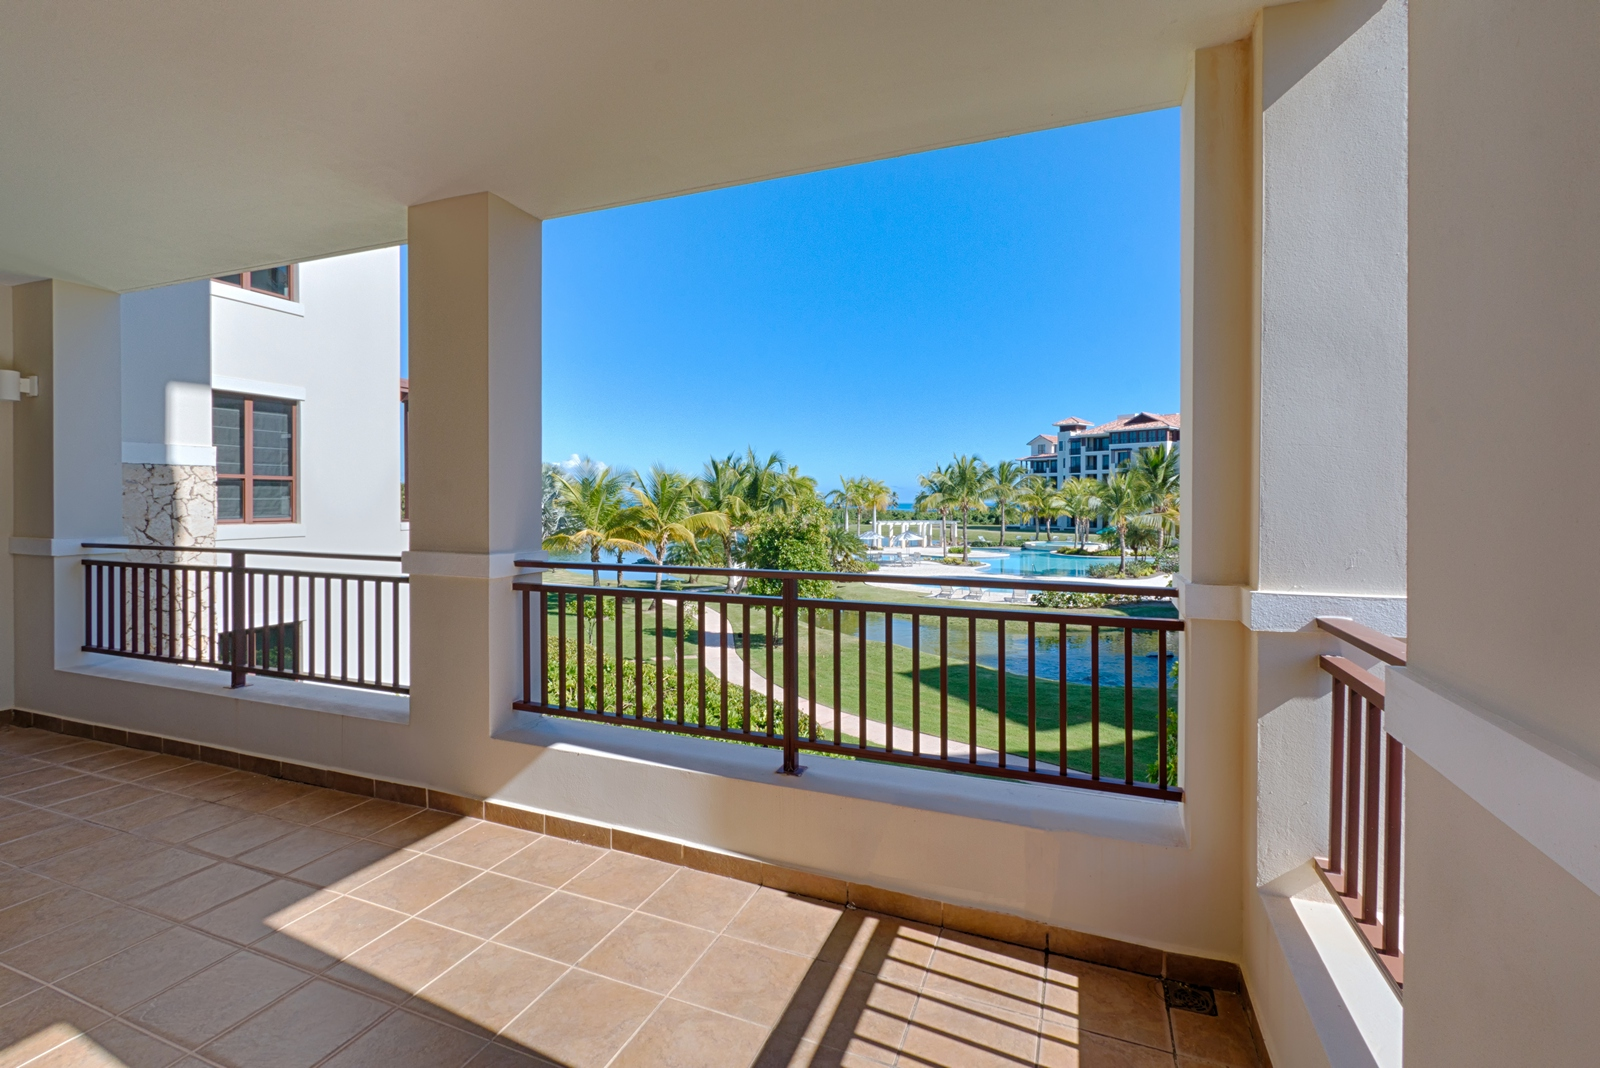 Additional photo for property listing at Residence 124 at 238 Candelero Drive 238 Candelero Drive, Apt 124 Solarea Beach Resort and Yacht Club Palmas Del Mar, 波多黎各 00791 波多黎各